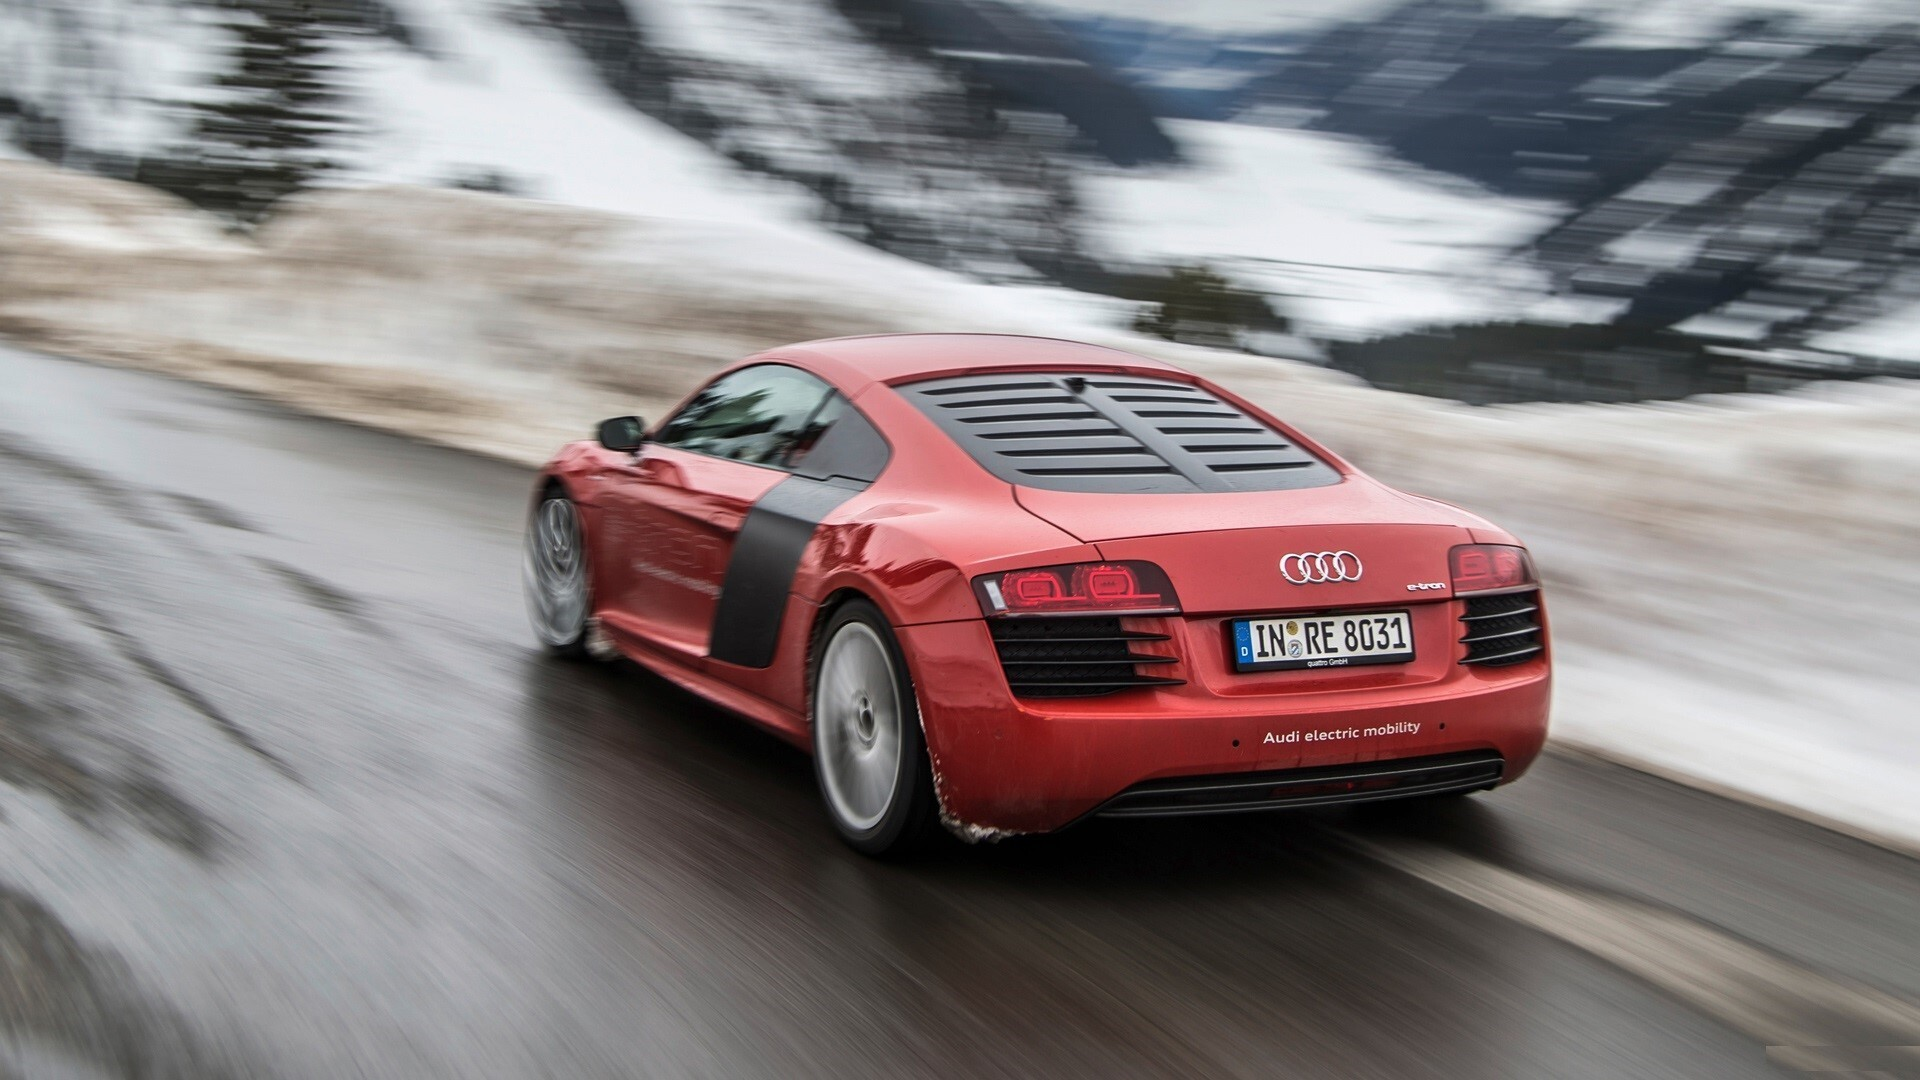 2013 Red Audi R8 E Tron Back Side On Road Car Wallpapers Hd Wallpapers